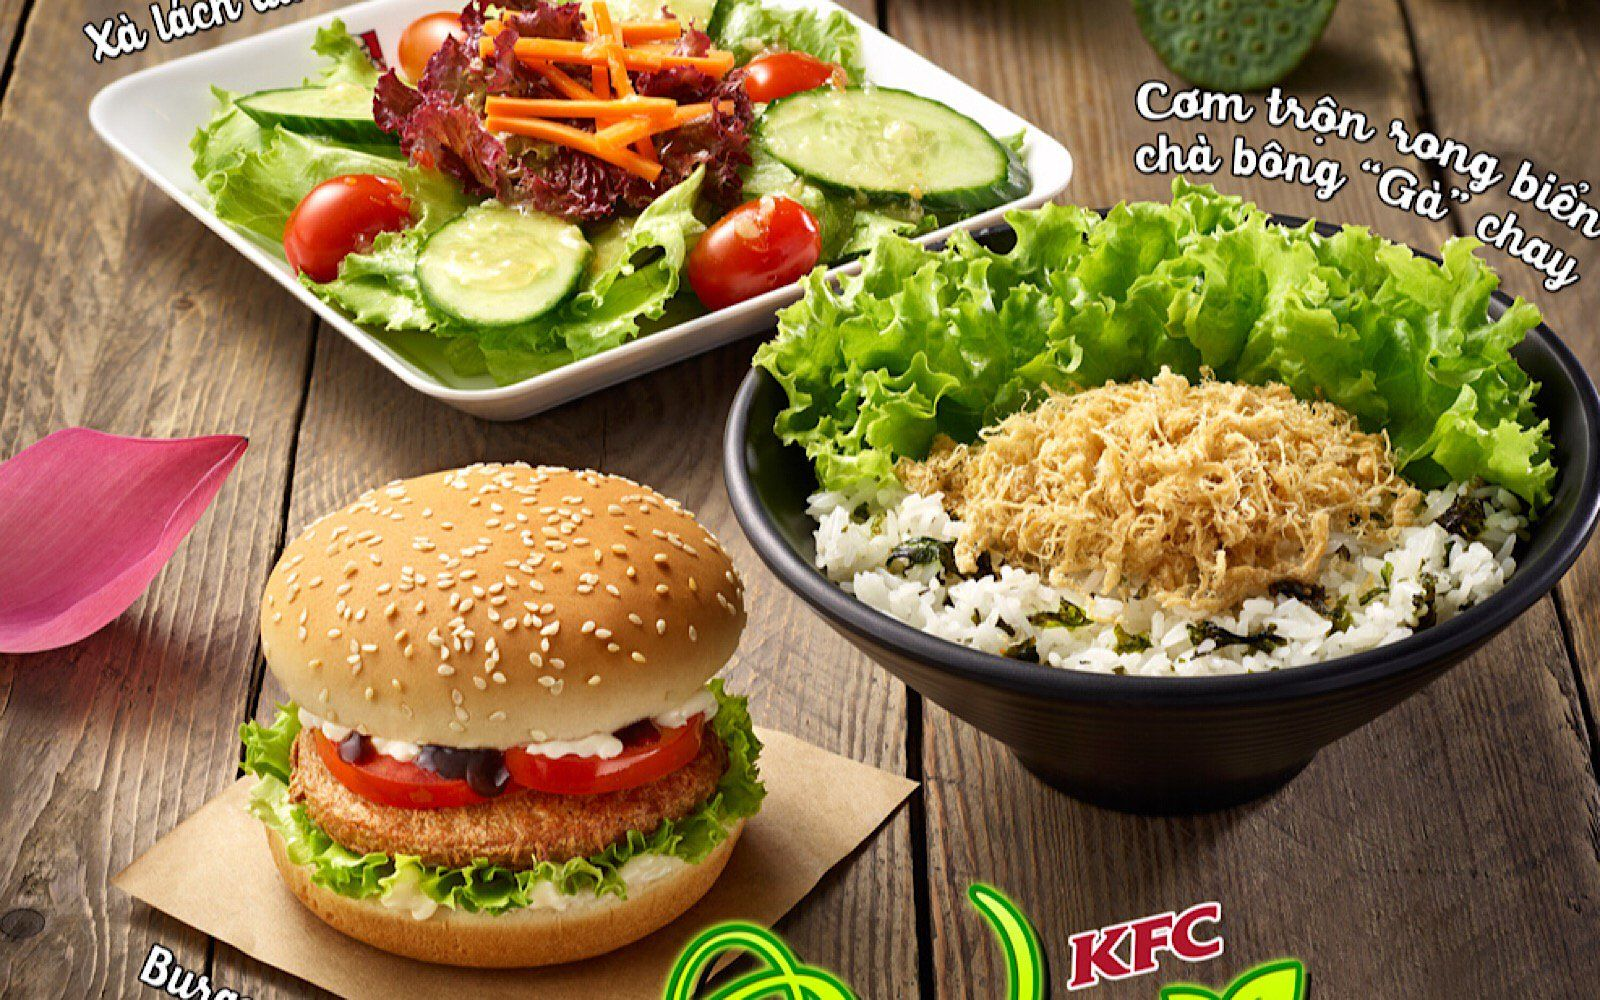 Vegan Menu Arrives At Kfc Vietnam Vegan Menu Vegan Cooking Restaurant Recipes Famous